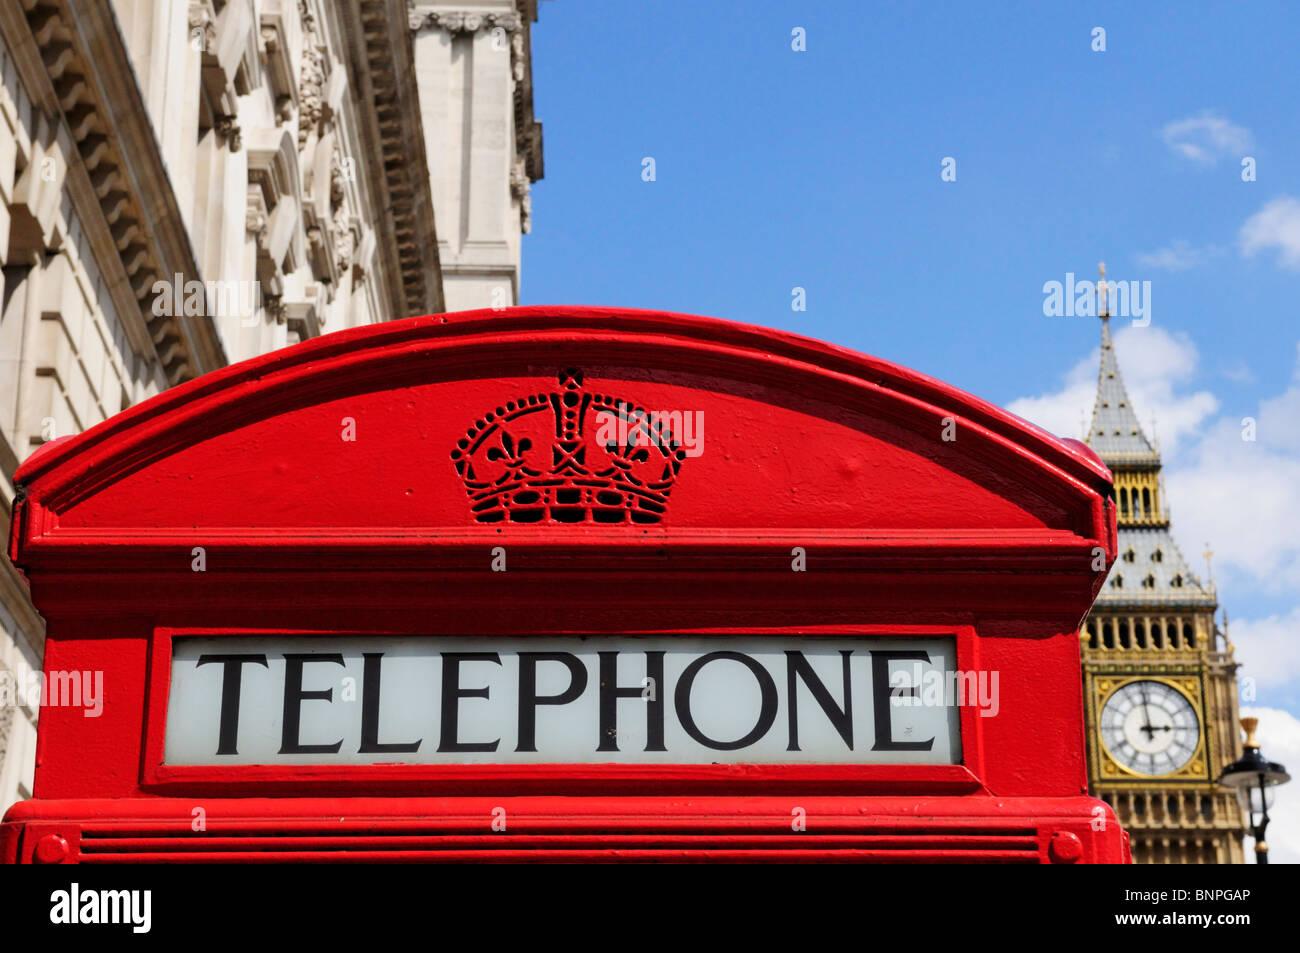 Red Telephone Box with Big Ben, Parliament Square, London, England, UK - Stock Image